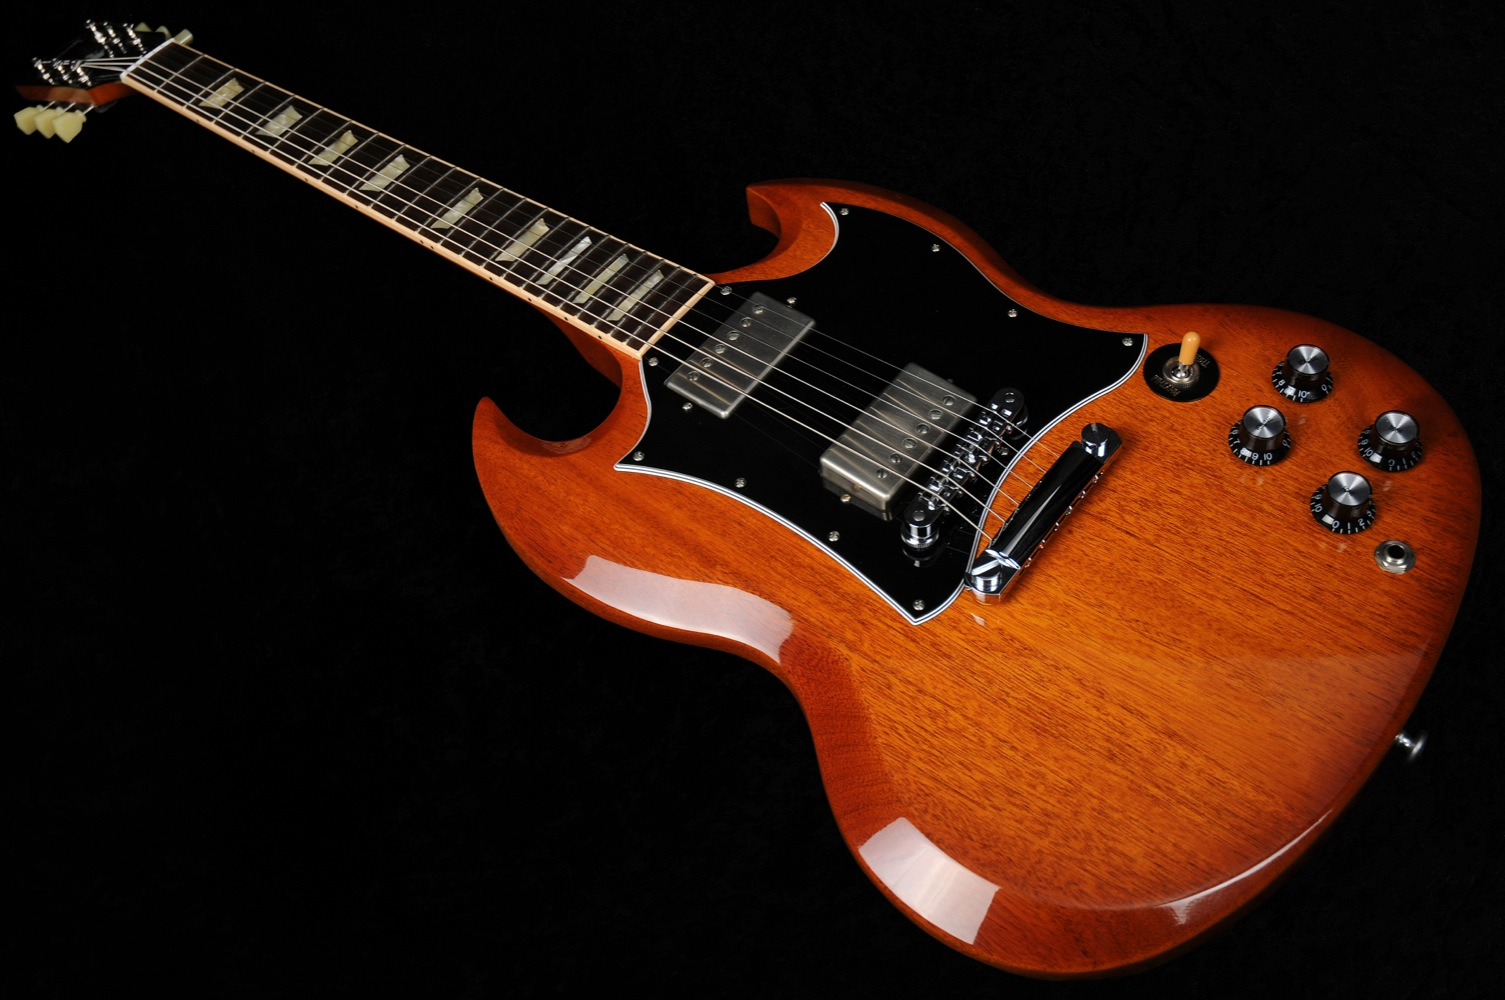 gibson sg standard 2012 natural burst with ohsc used 0 guitar for sale wildwire music and audio. Black Bedroom Furniture Sets. Home Design Ideas